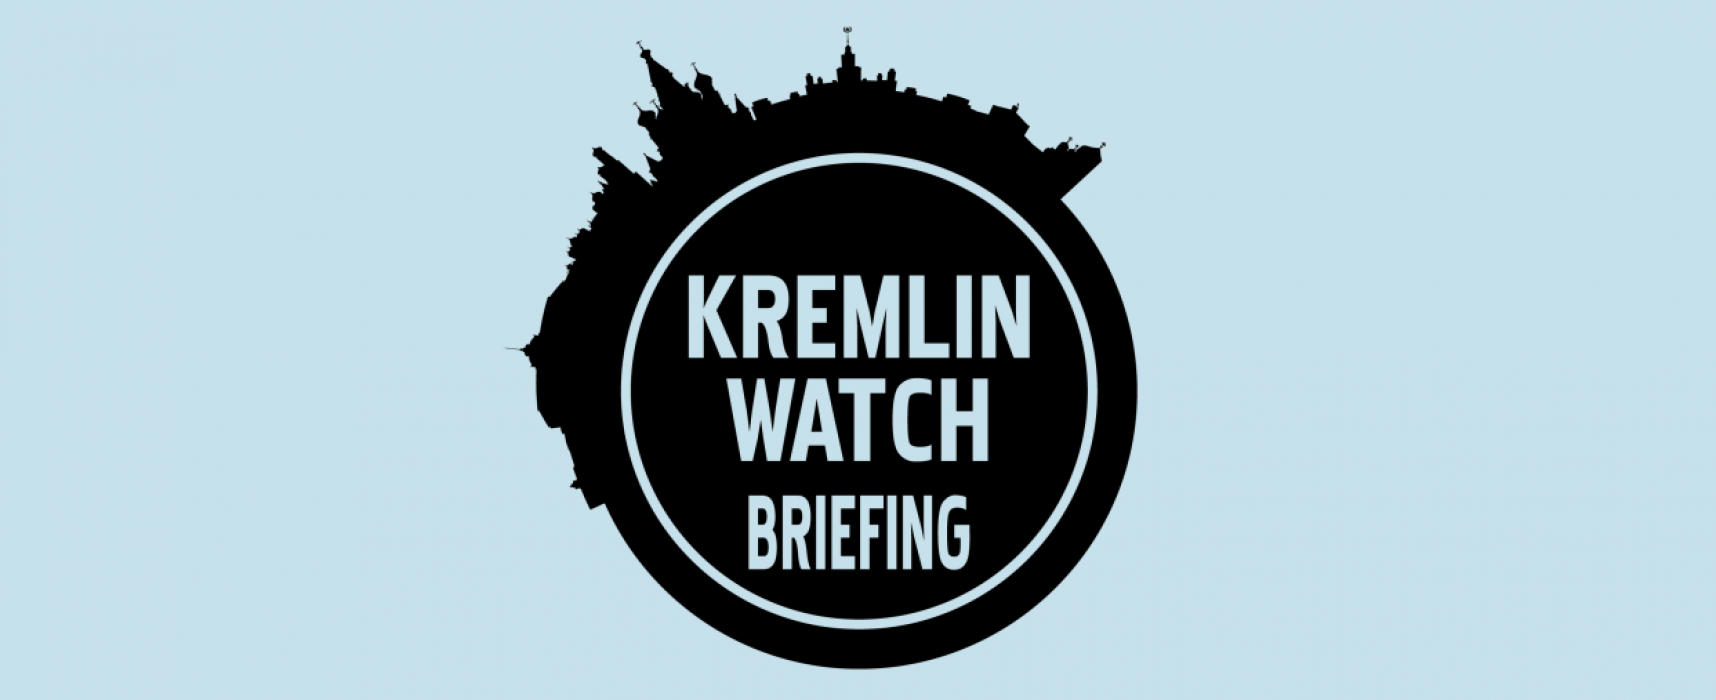 Kremlin Watch Briefing: The murderer of ethnic Chechen in Berlin has been linked to the GRU